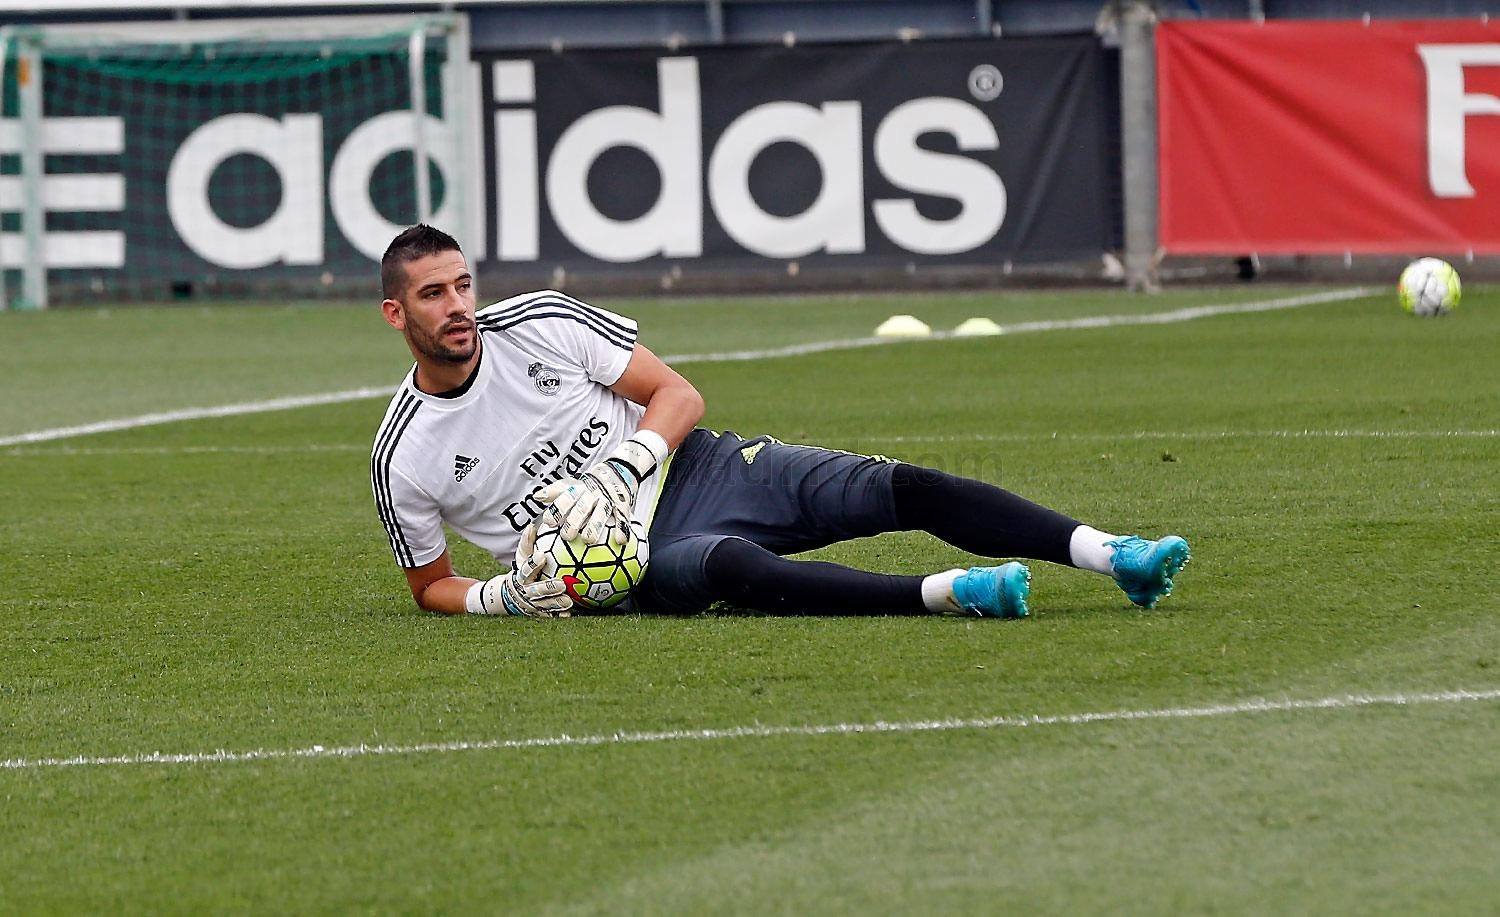 Real Madrid - Entrenamiento del Real Madrid - 08-08-2015